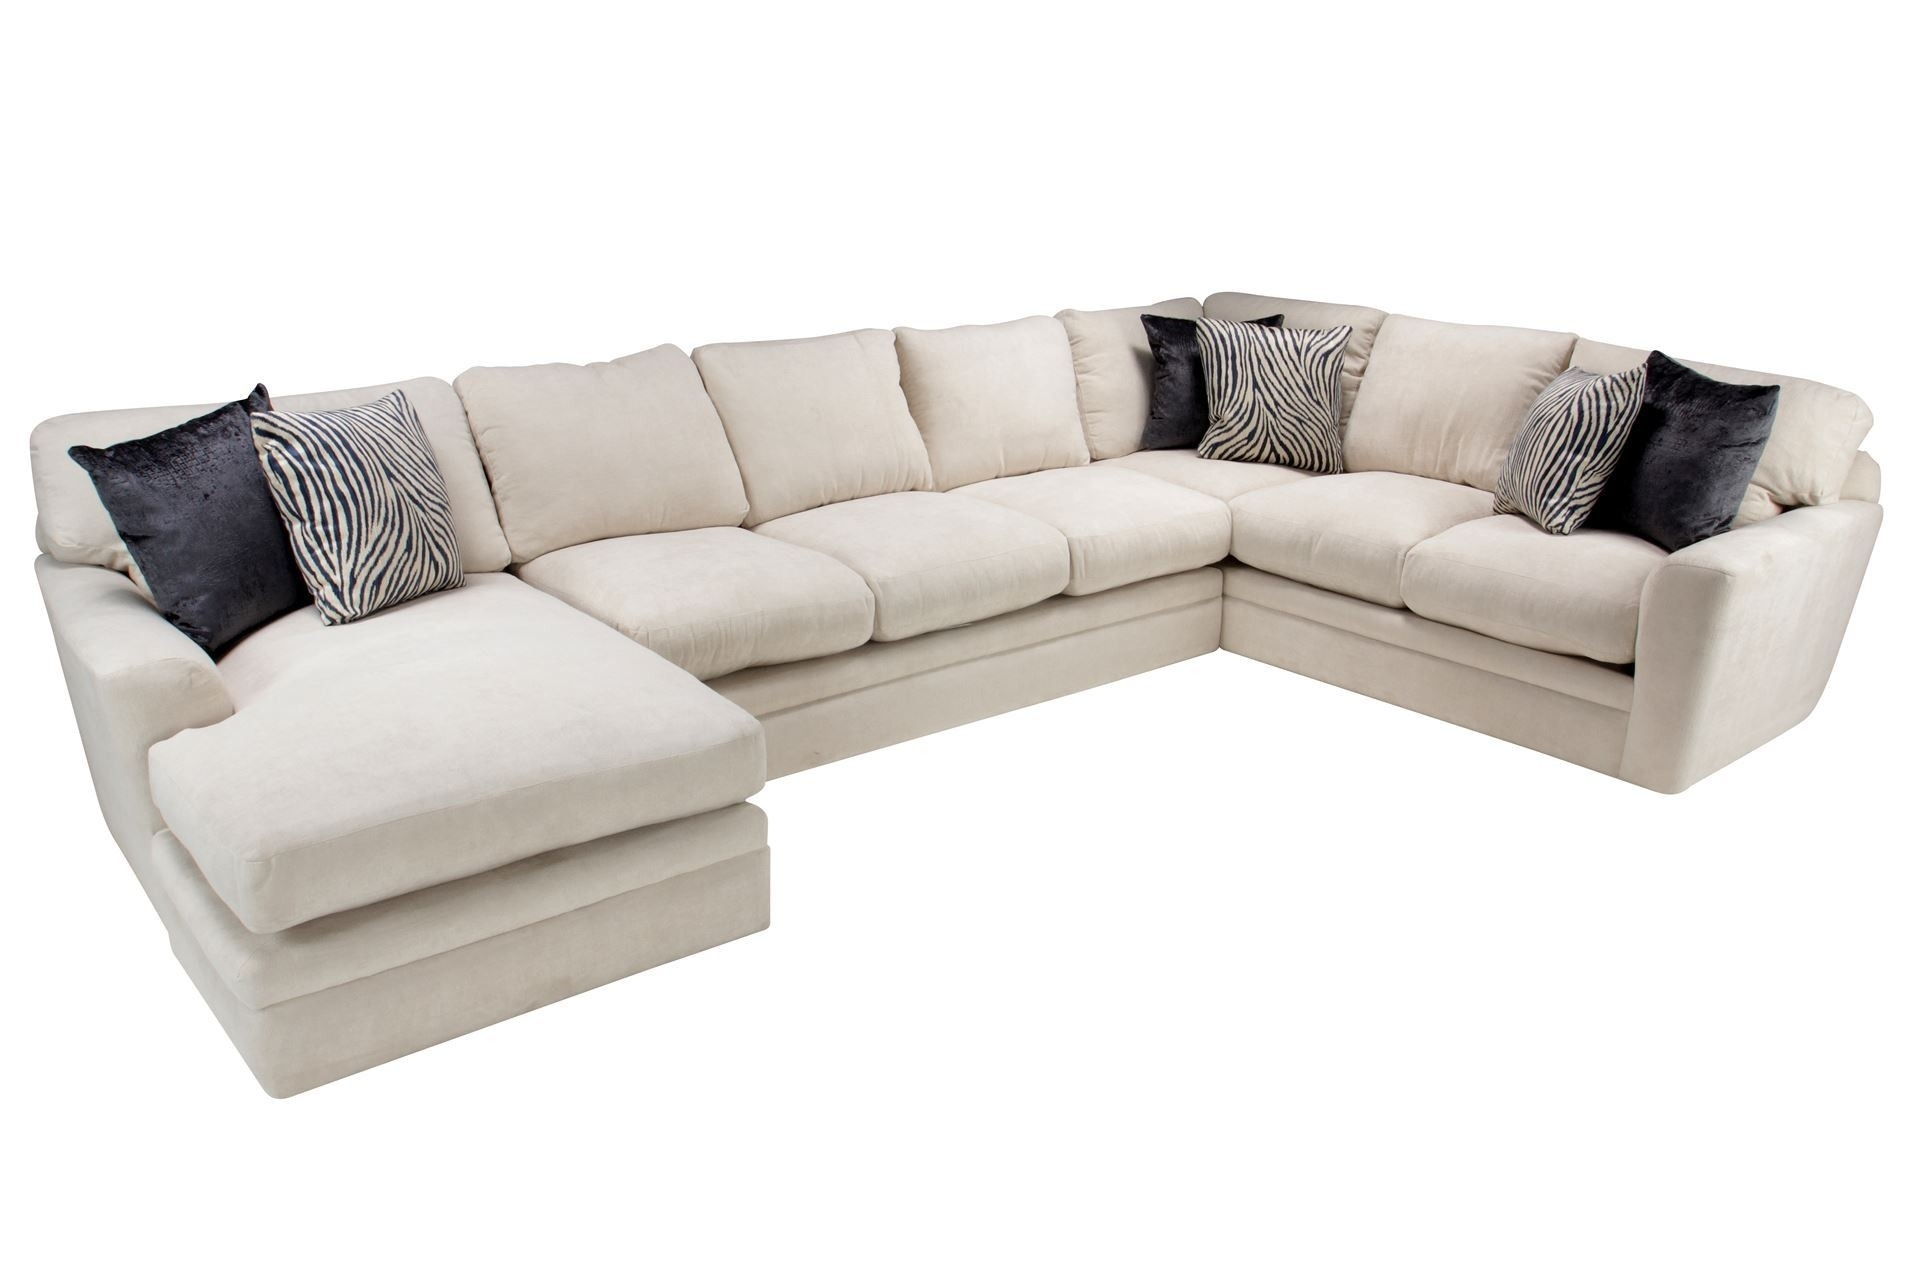 Living Spaces Sectional Couches Delano 2 Piece W Laf Oversized With Delano 2 Piece Sectionals With Laf Oversized Chaise (View 7 of 30)